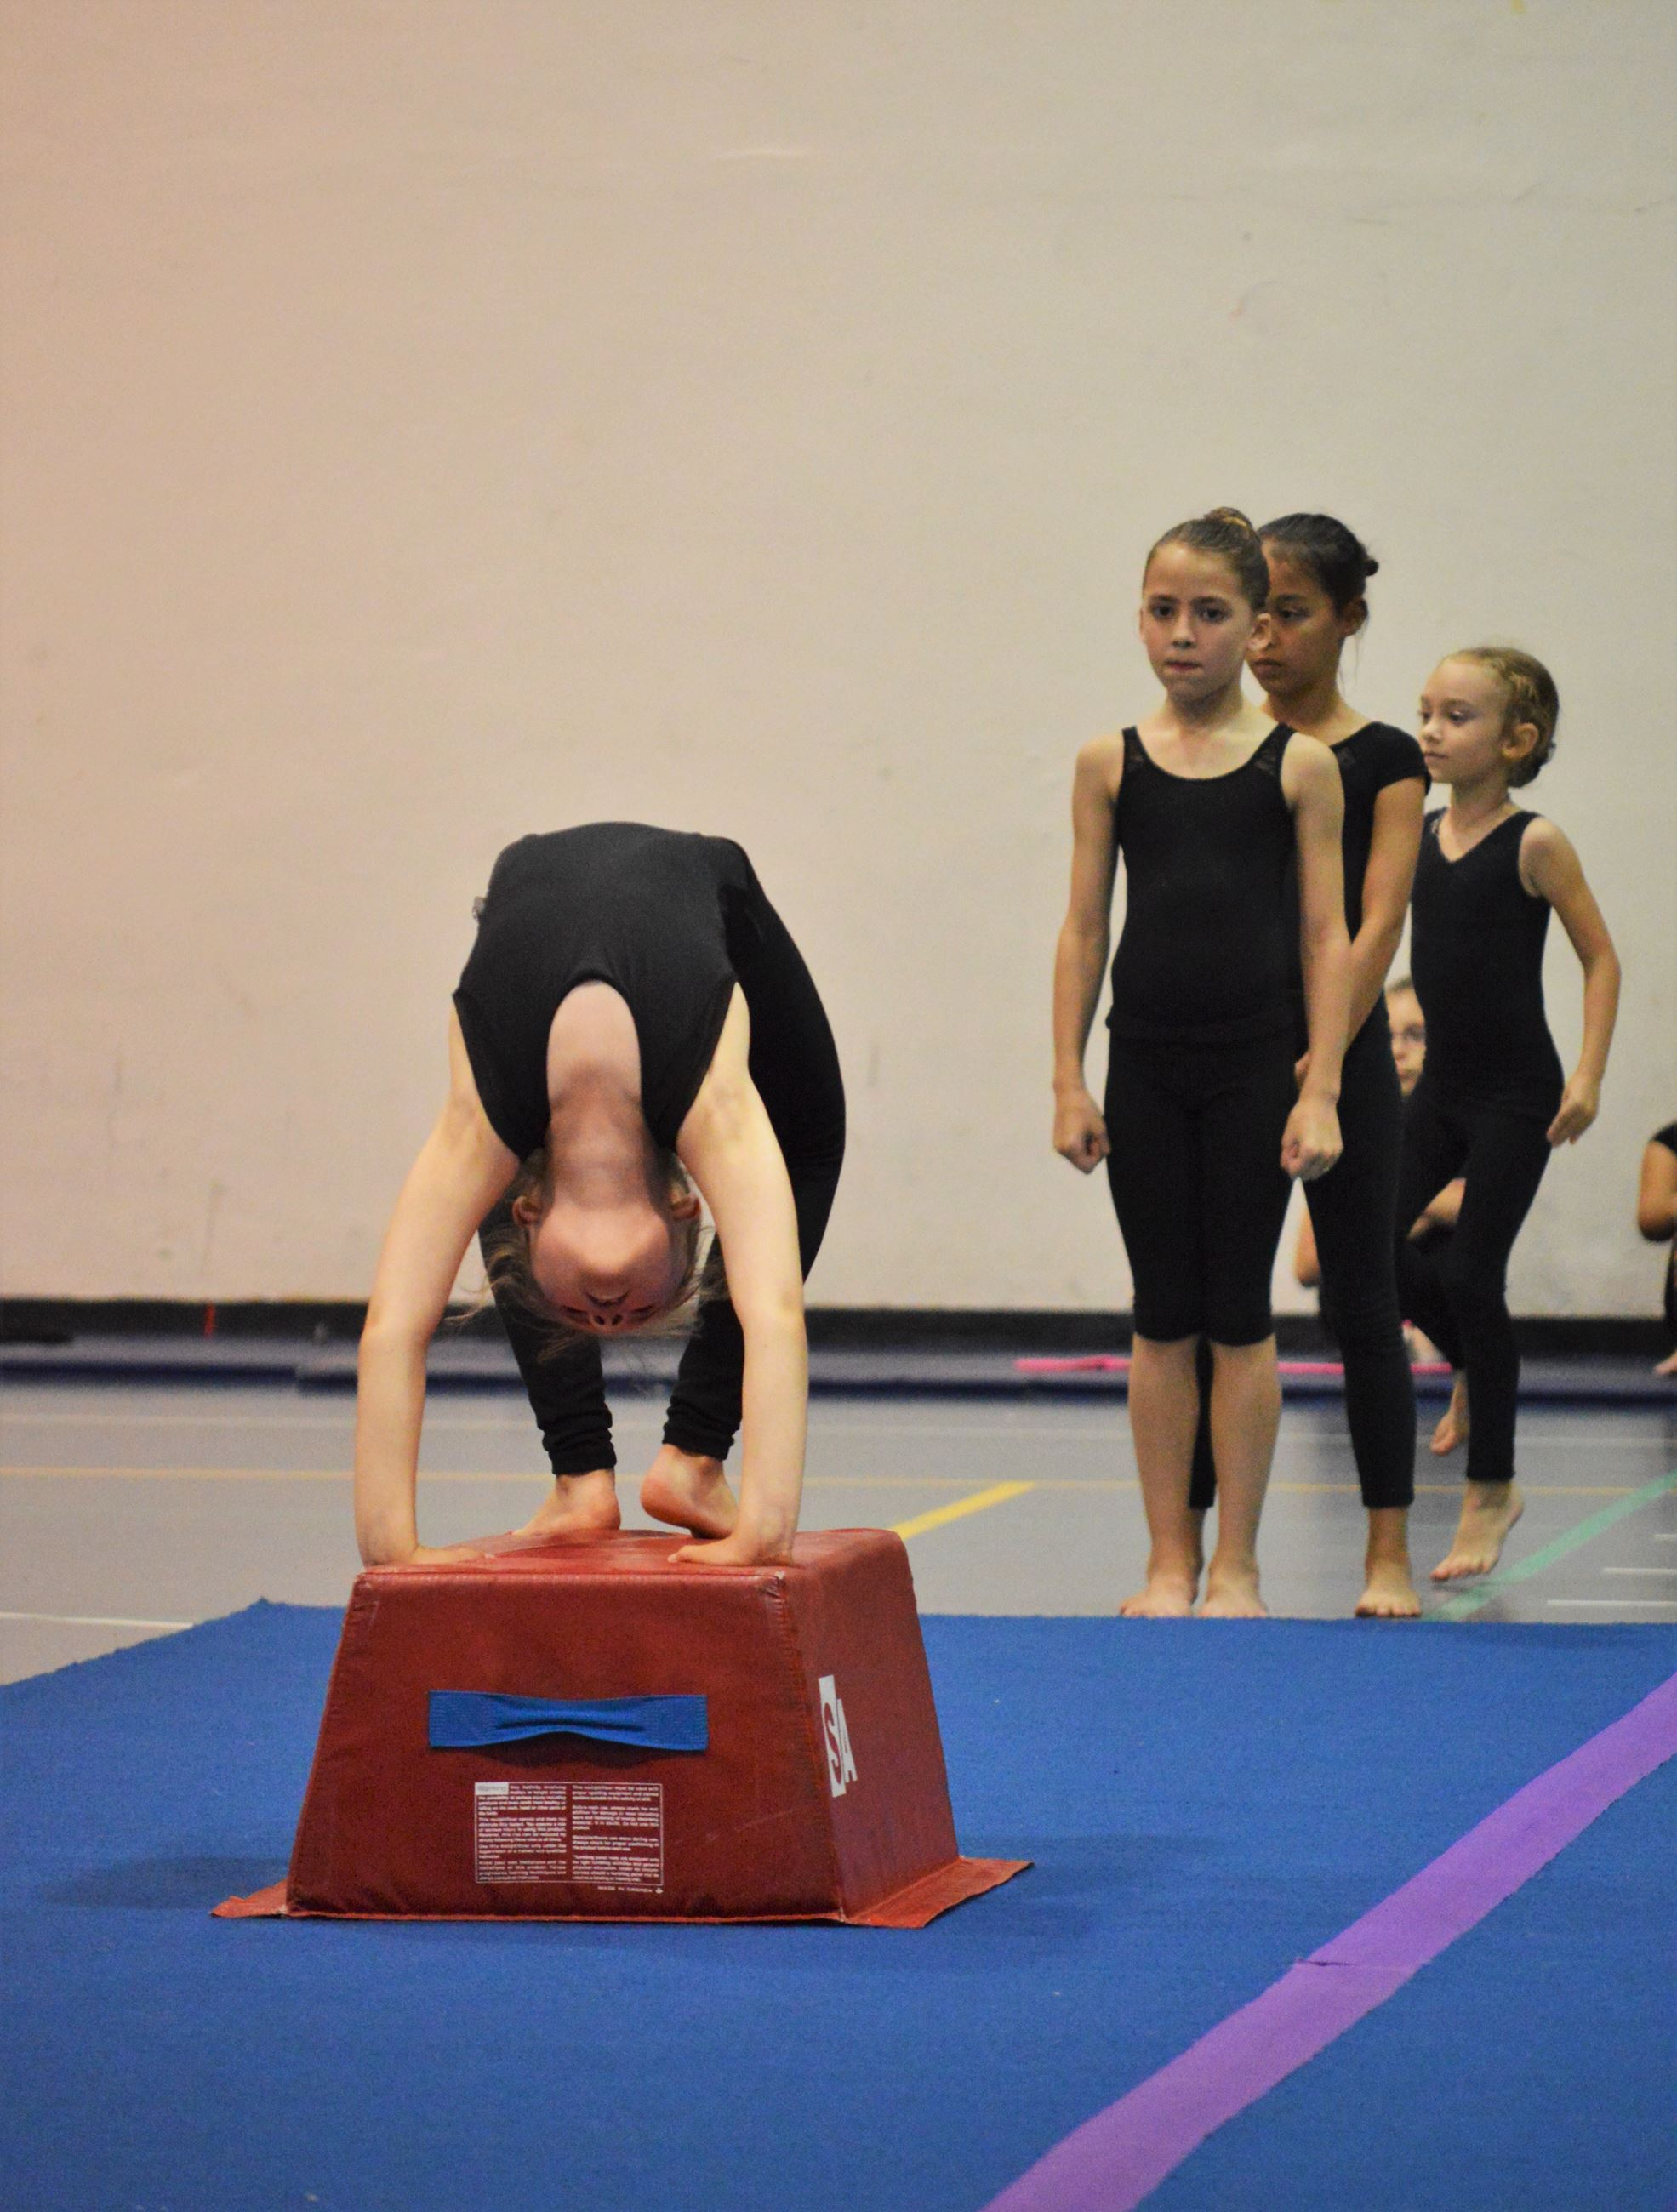 A girl in a gymnastics pose with other girls waiting in line